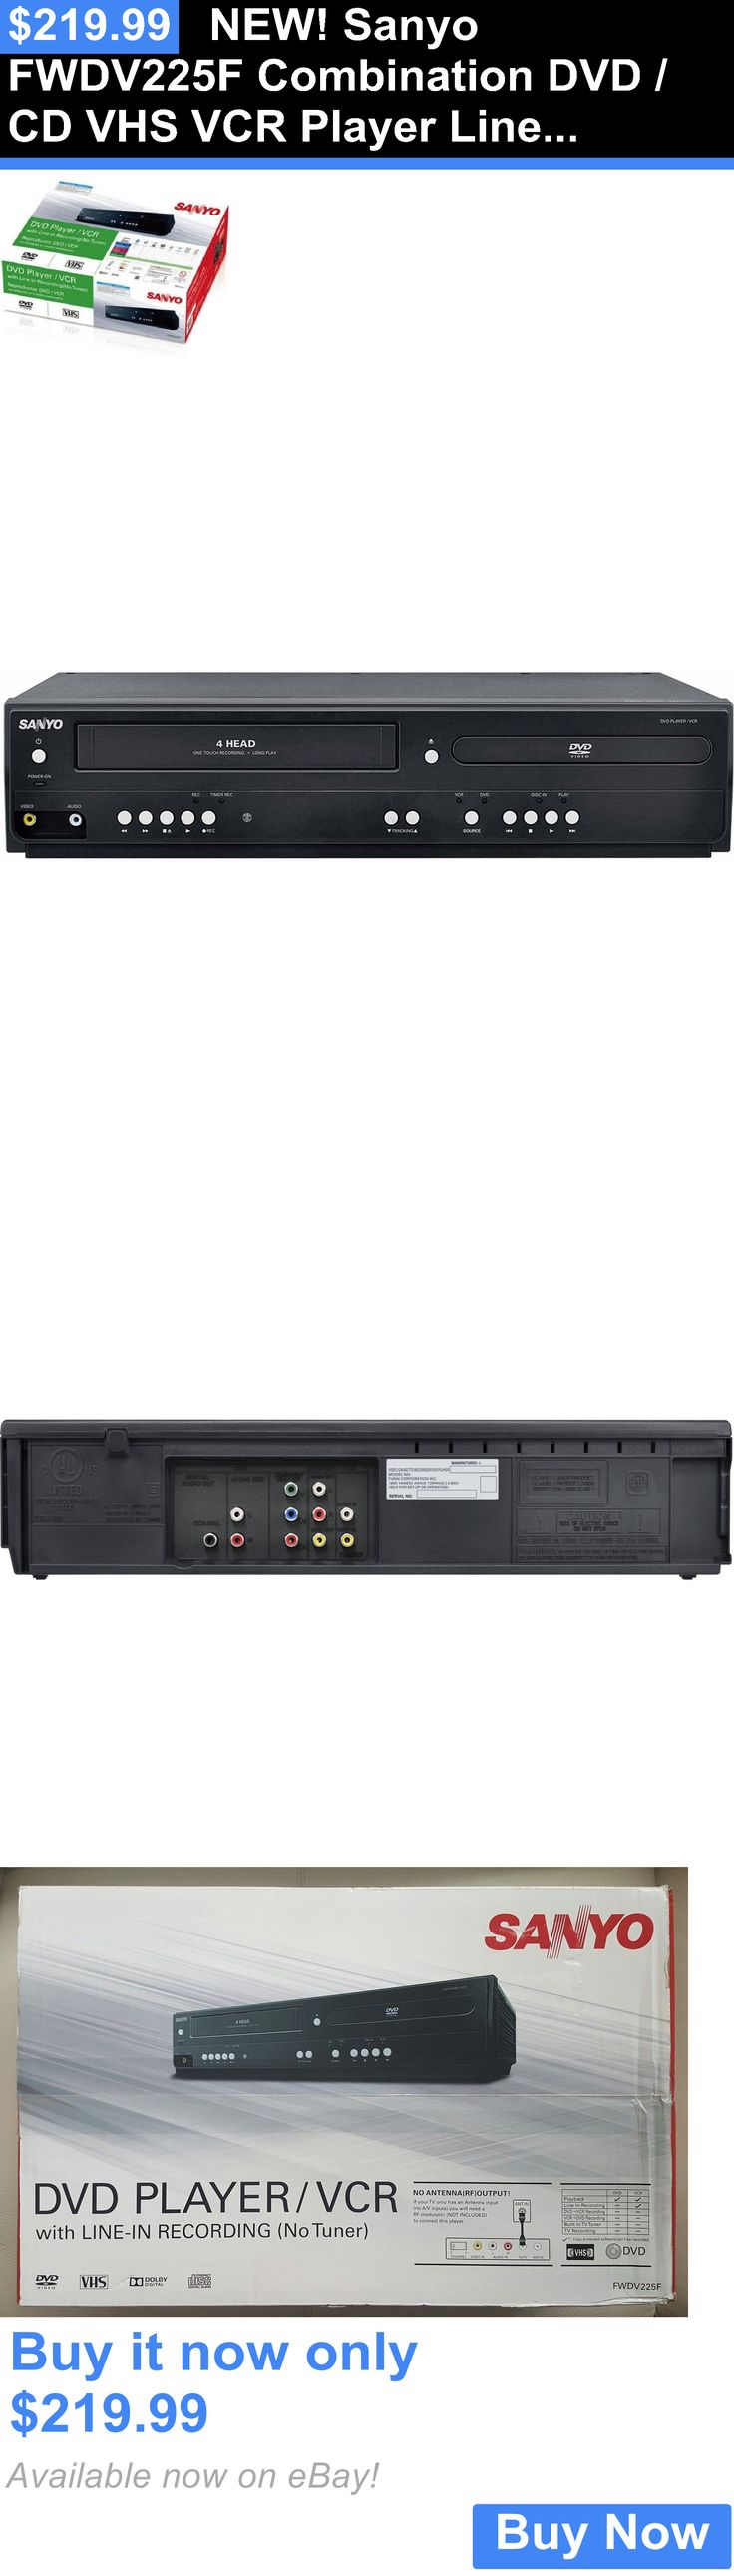 DVD and Blu-ray Players: New! Sanyo Fwdv225f Combination Dvd / Cd Vhs Vcr Player Line In Recording Remote BUY IT NOW ONLY: $219.99